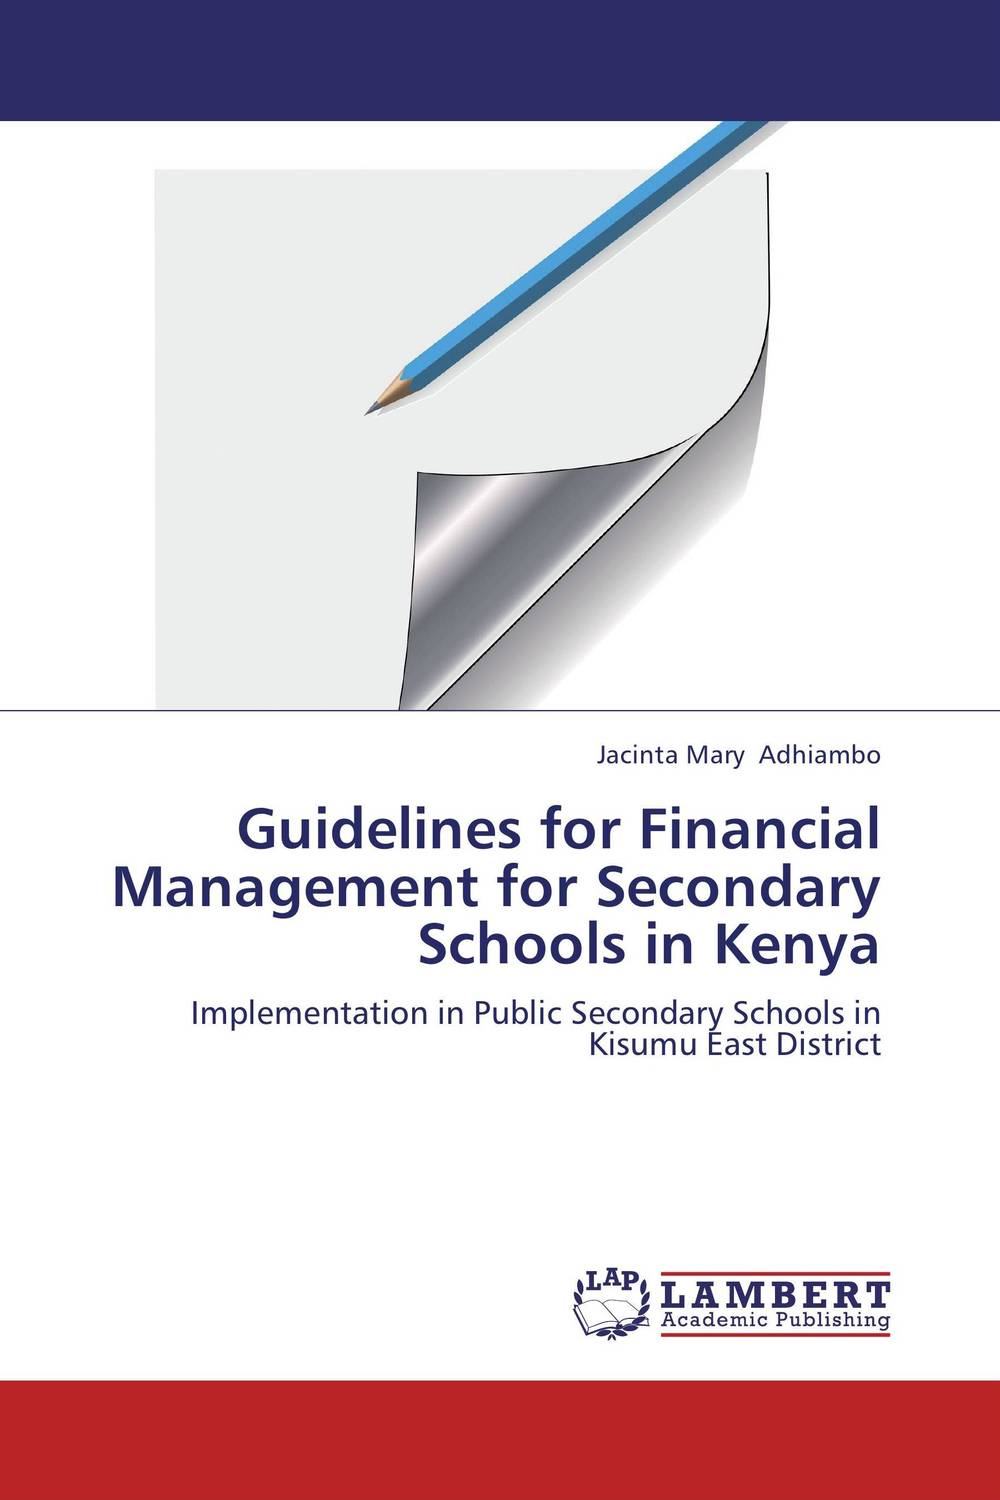 купить Guidelines for Financial Management for Secondary  Schools in Kenya недорого